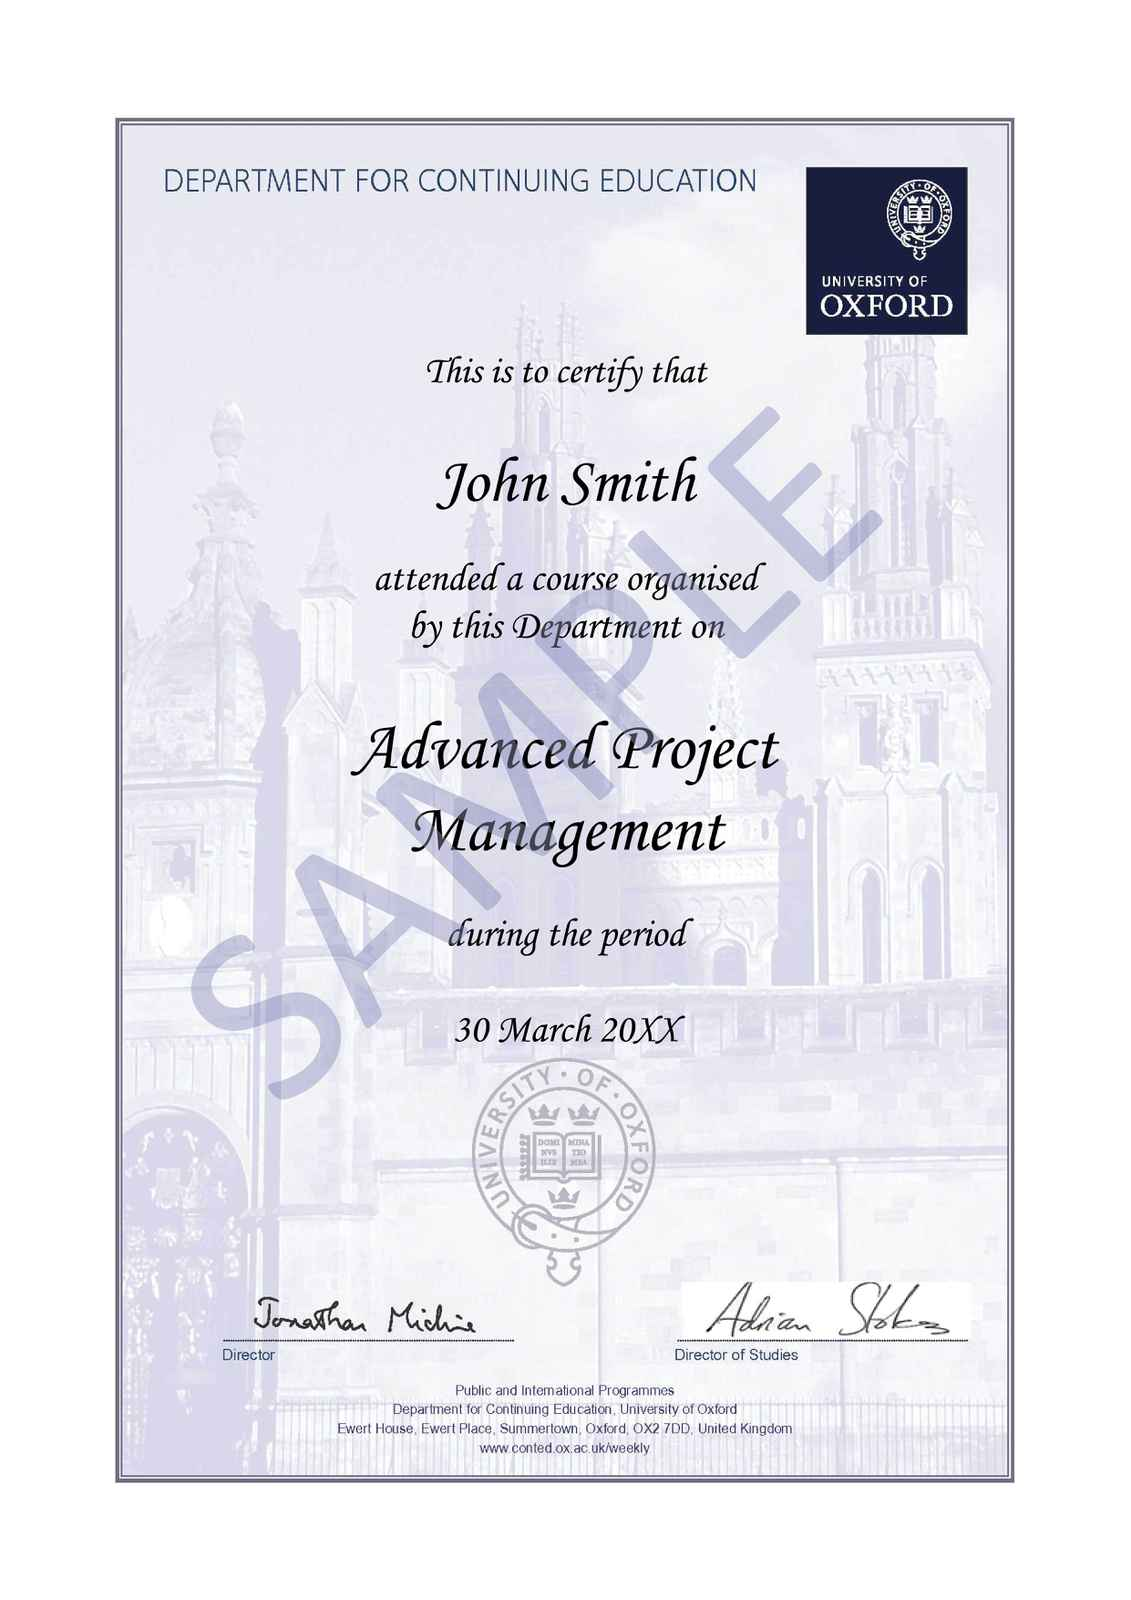 Advanced project management oxford university department for certification yadclub Image collections